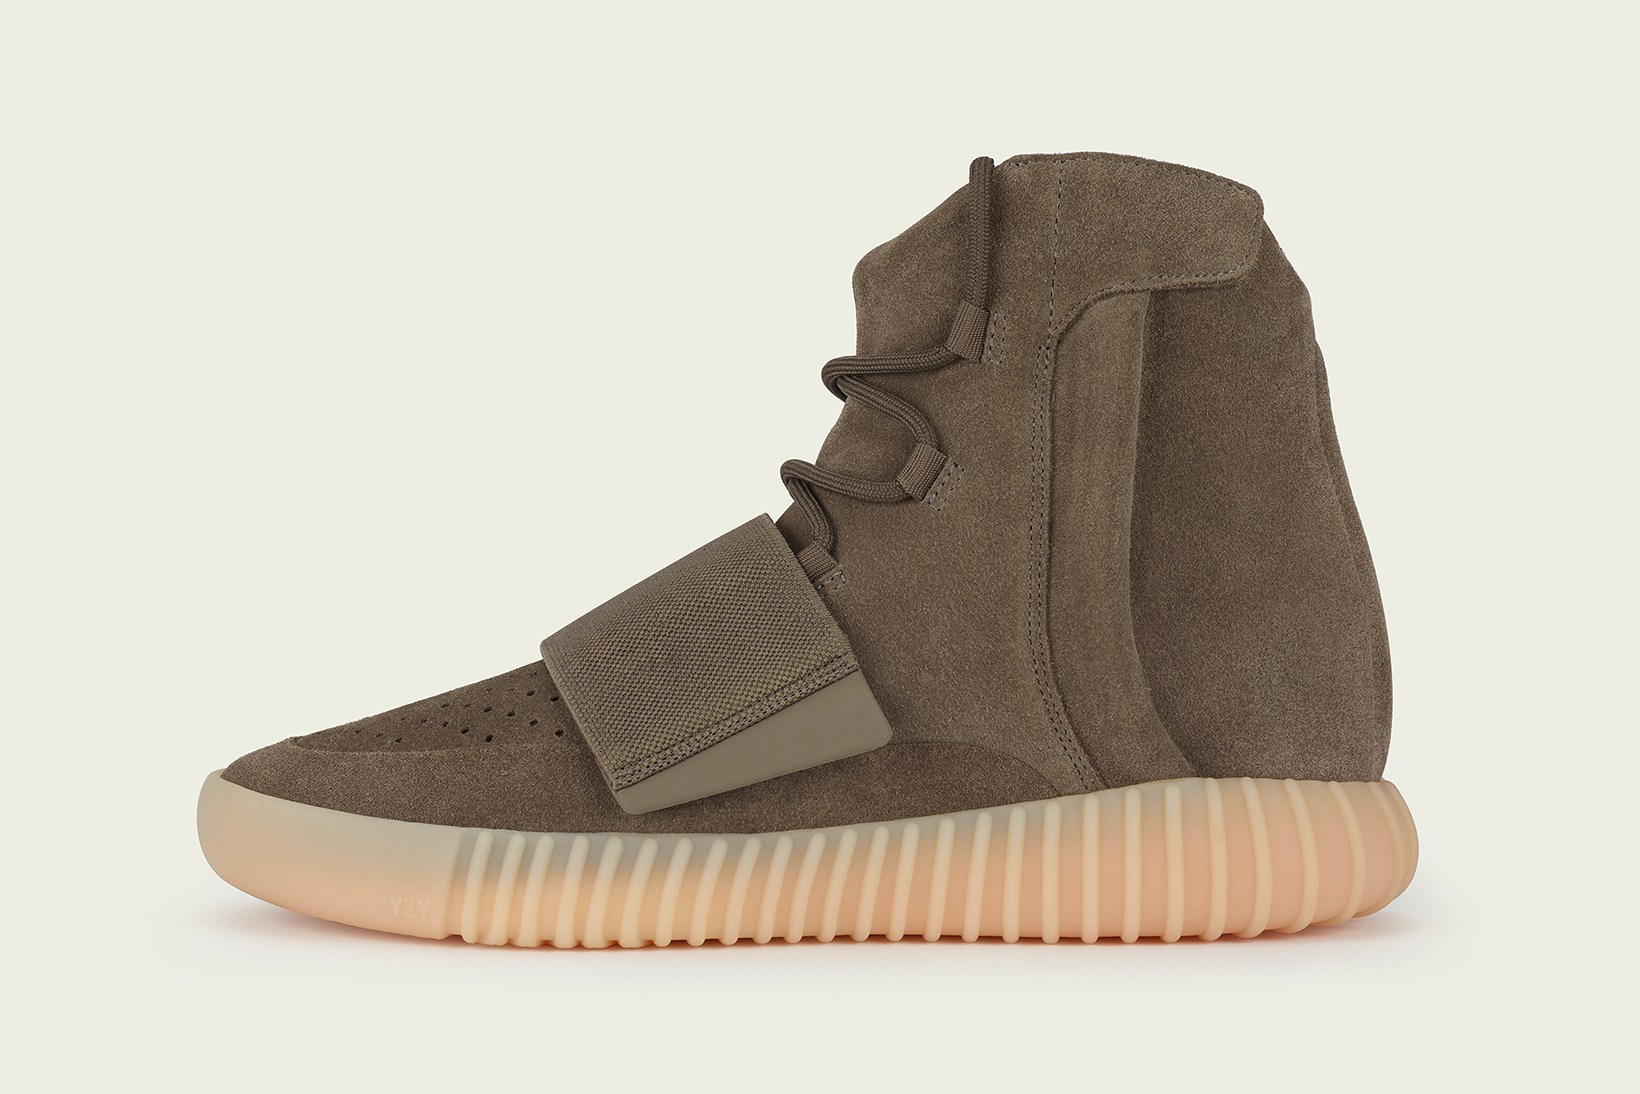 yeezy-boost-750-light-brown-store-list-1